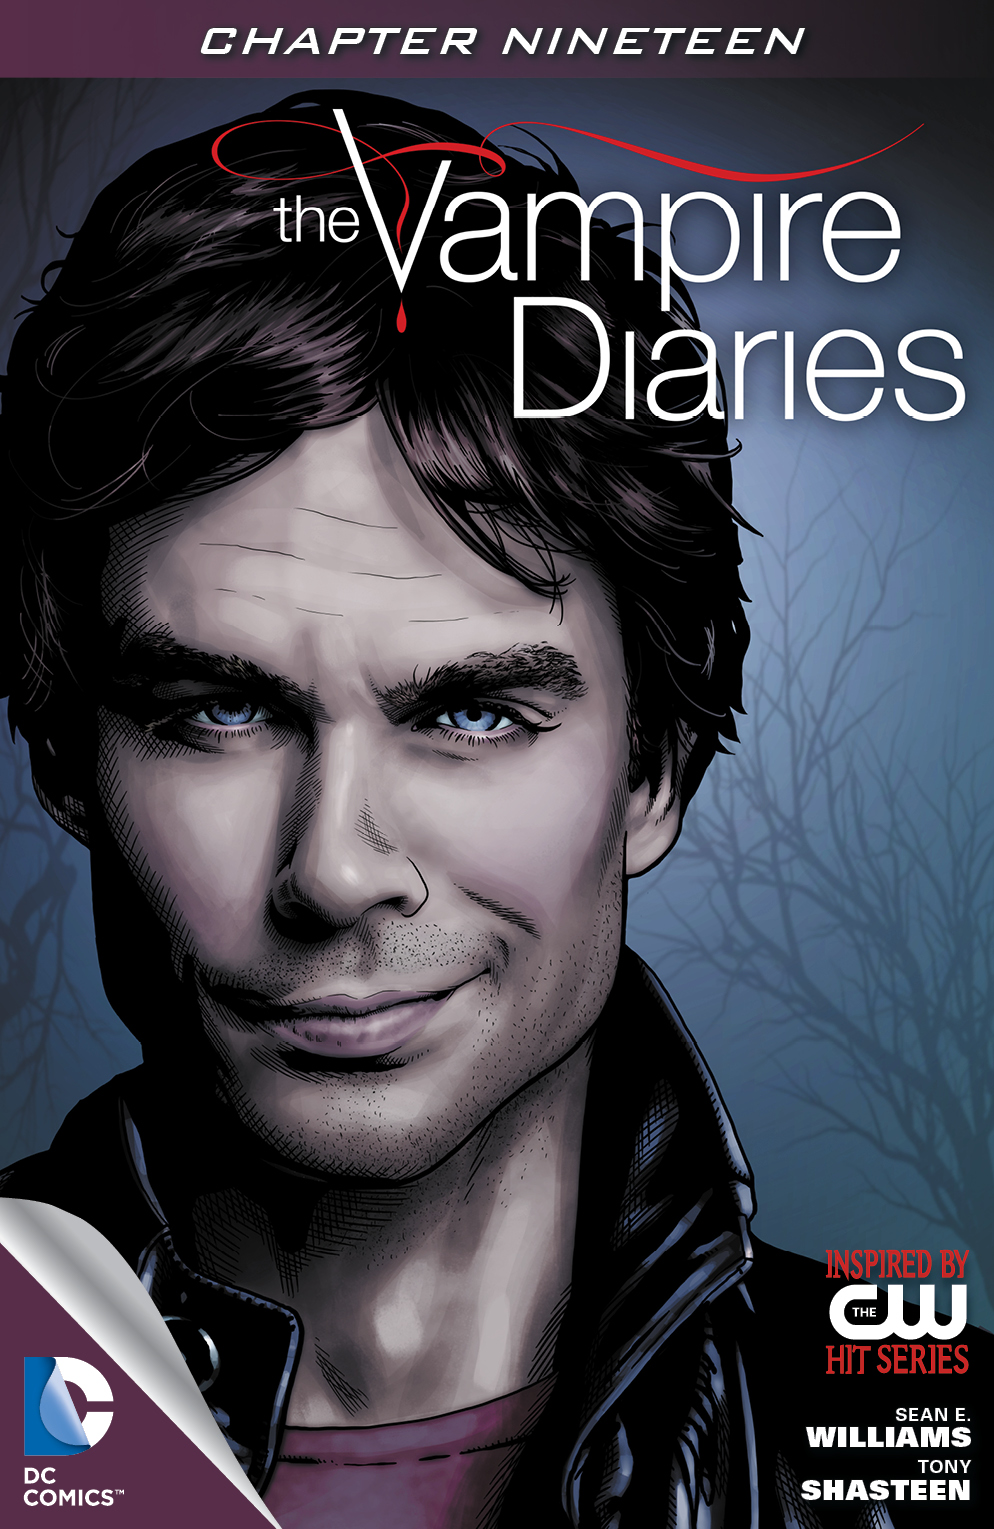 The Vampire Diaries Chapter 19